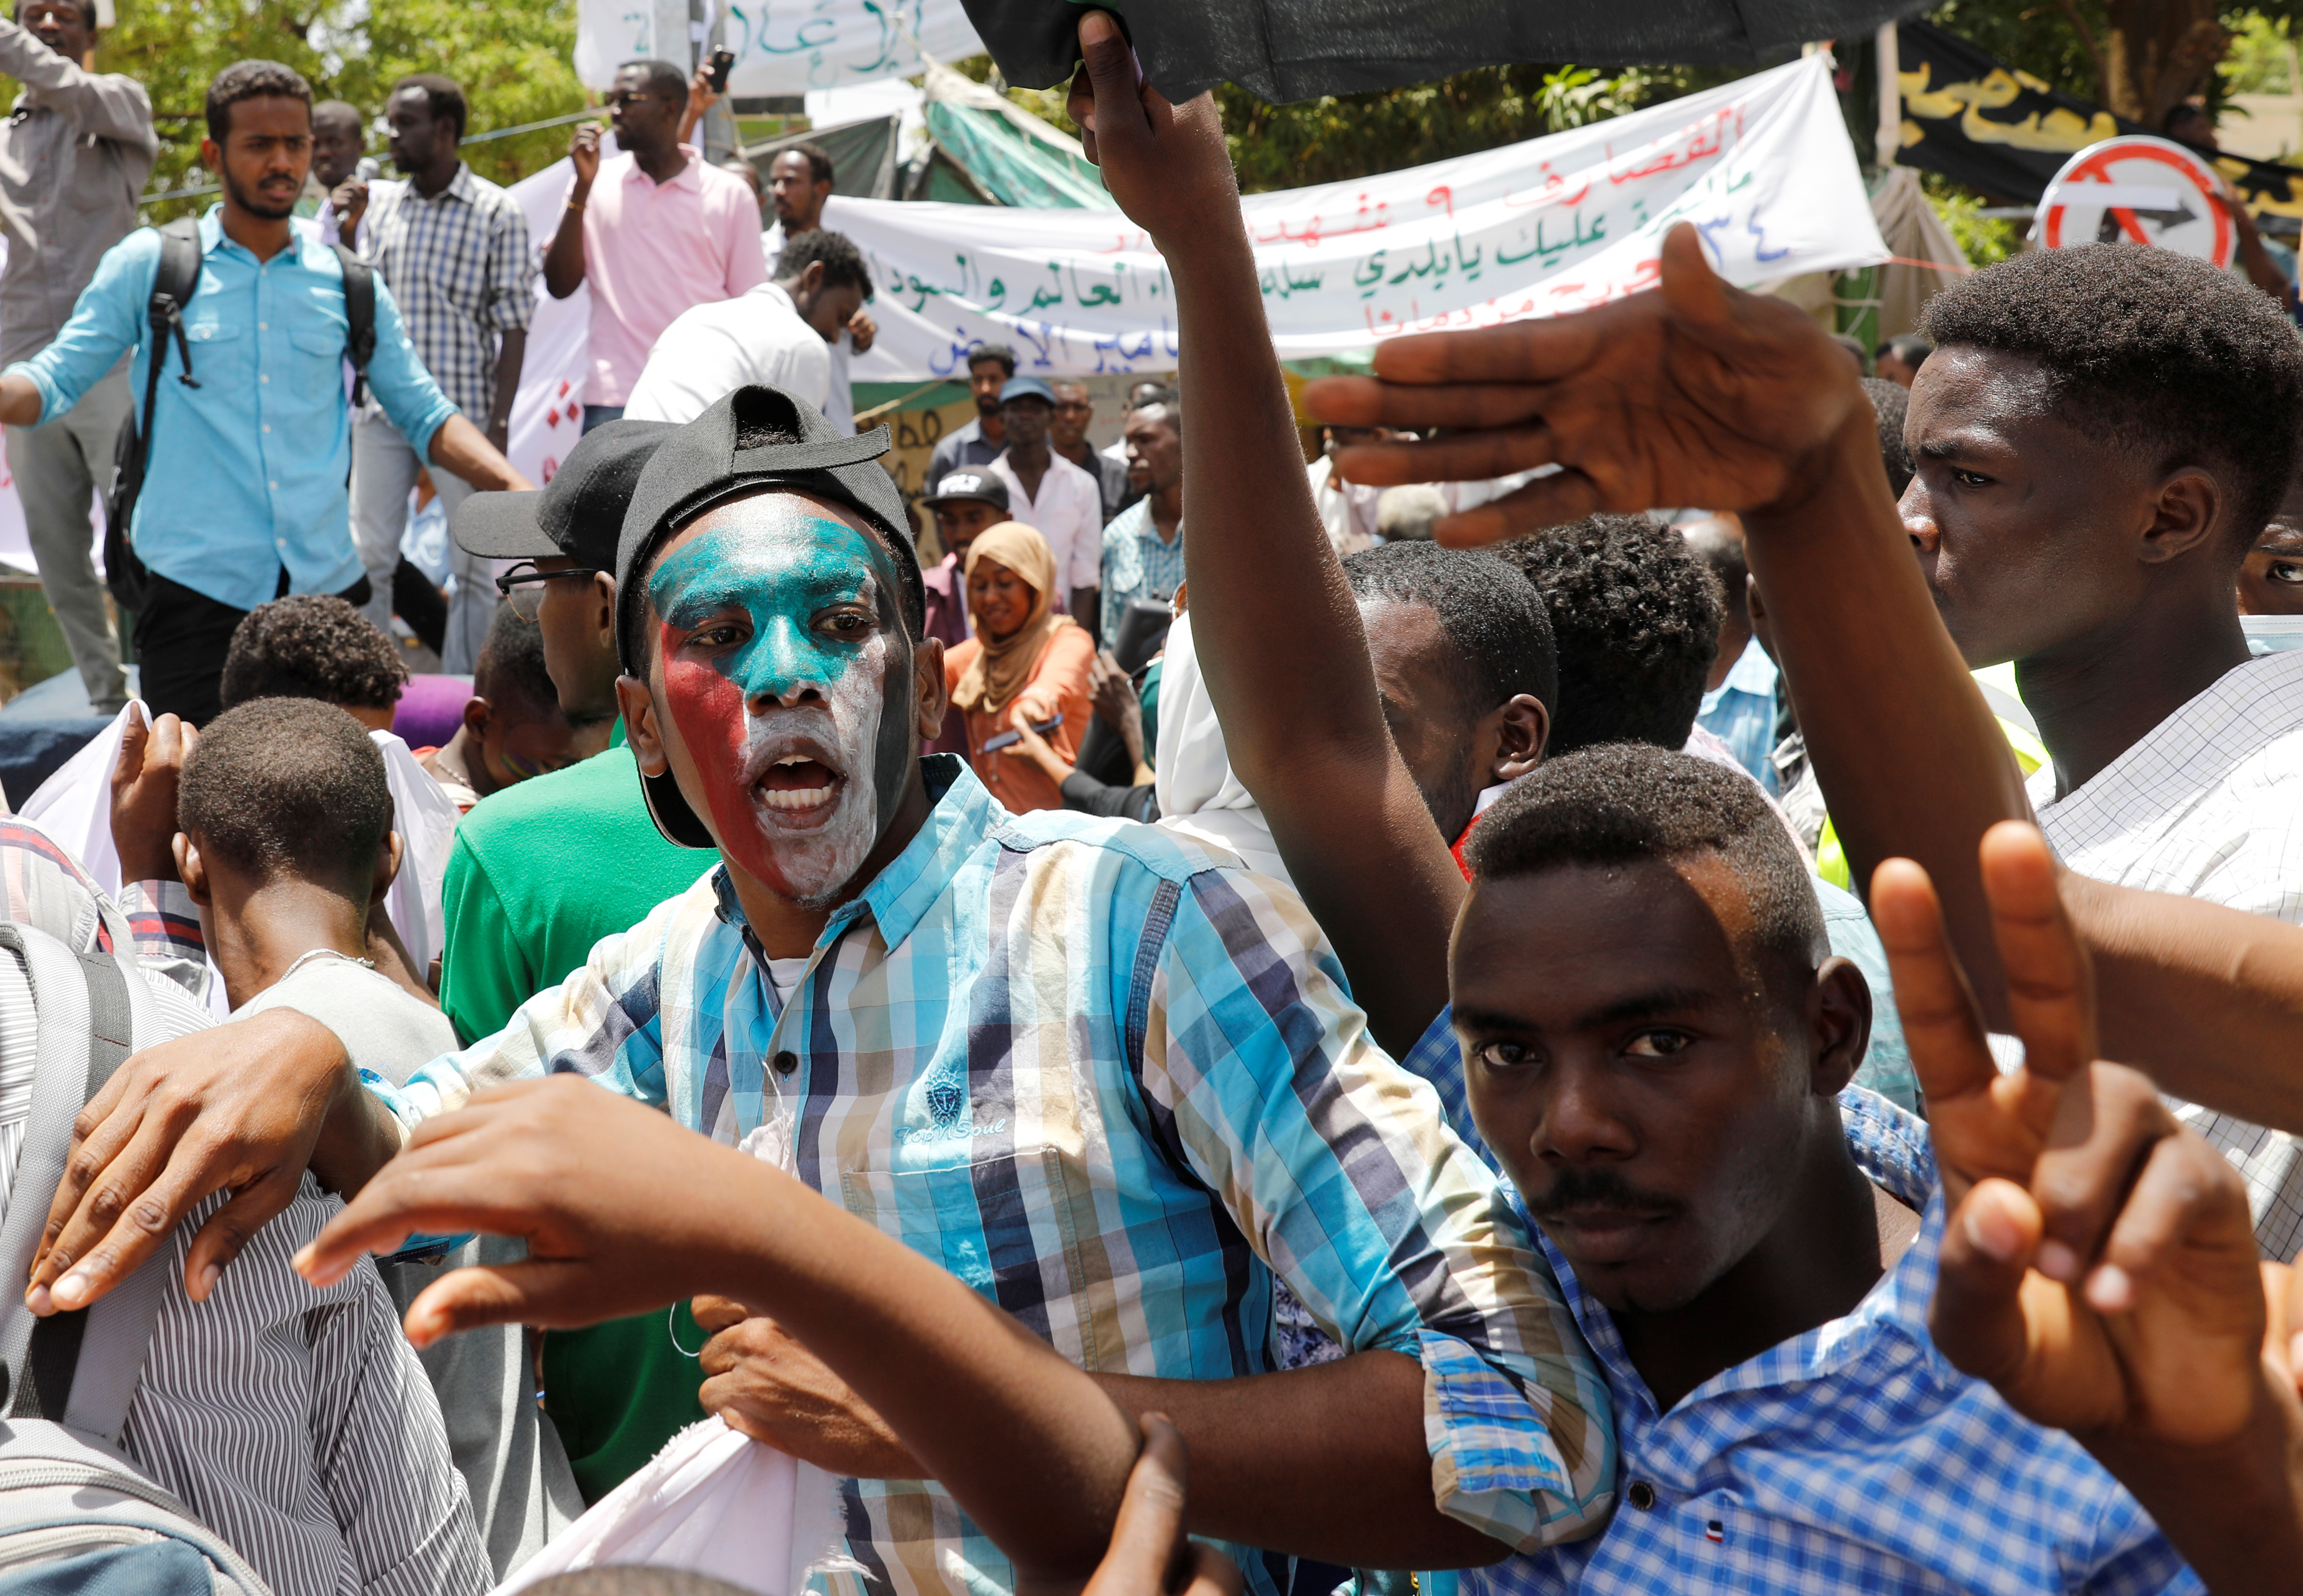 Protesters make victory signs and shout slogans in front of the Defence Ministry in Khartoum, Sudan, April 20, 2019. REUTERS/Umit Bektas